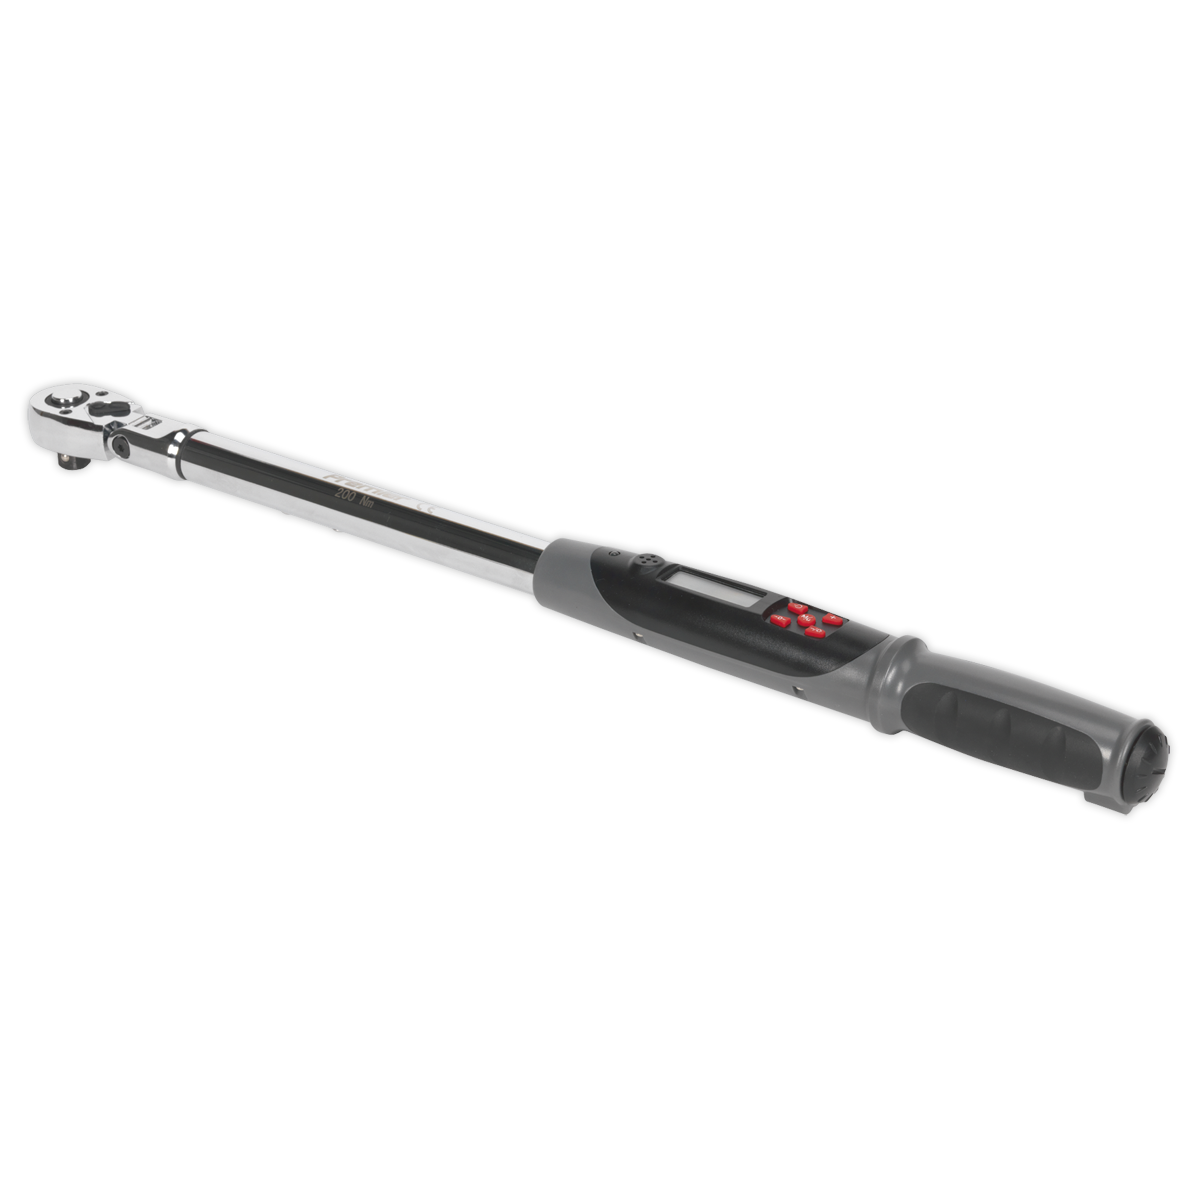 "Angle Torque Wrench Flexi-Head Digital 1/2""Sq Drive 20-200Nm(14.7-147.5lb.ft)"